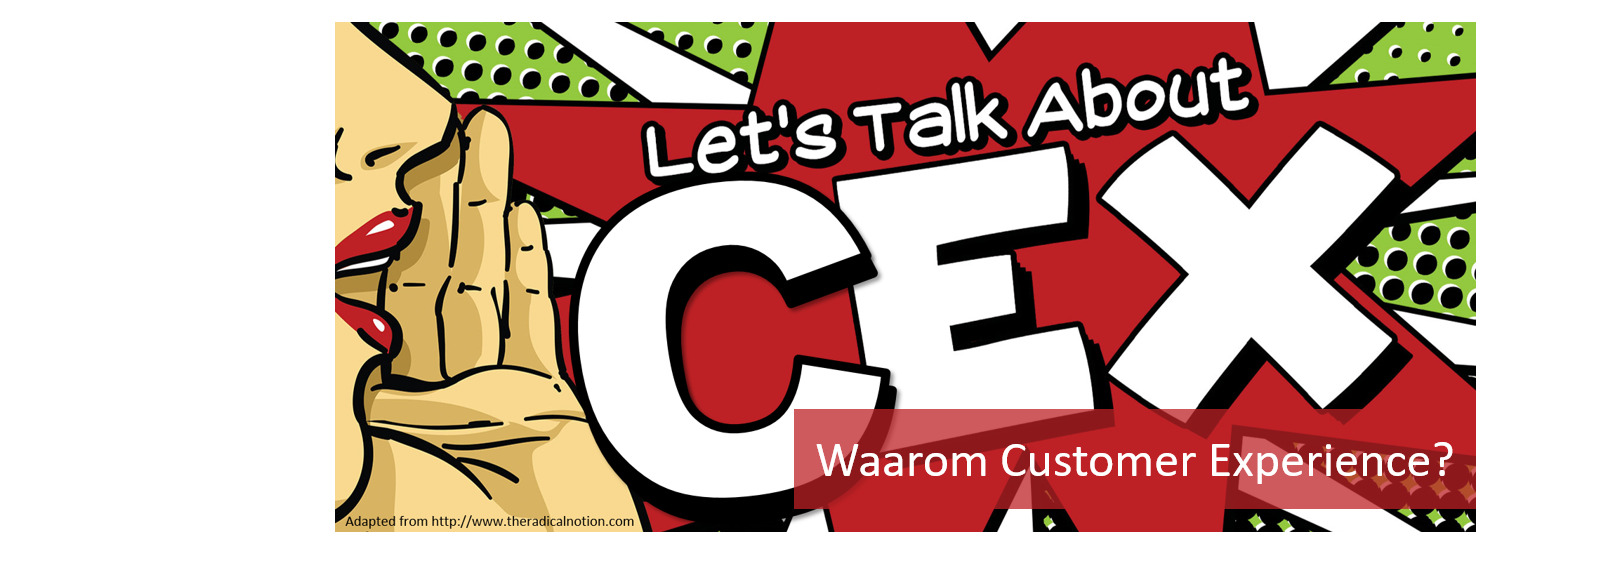 Let's talk about CEX (Customer Experience)